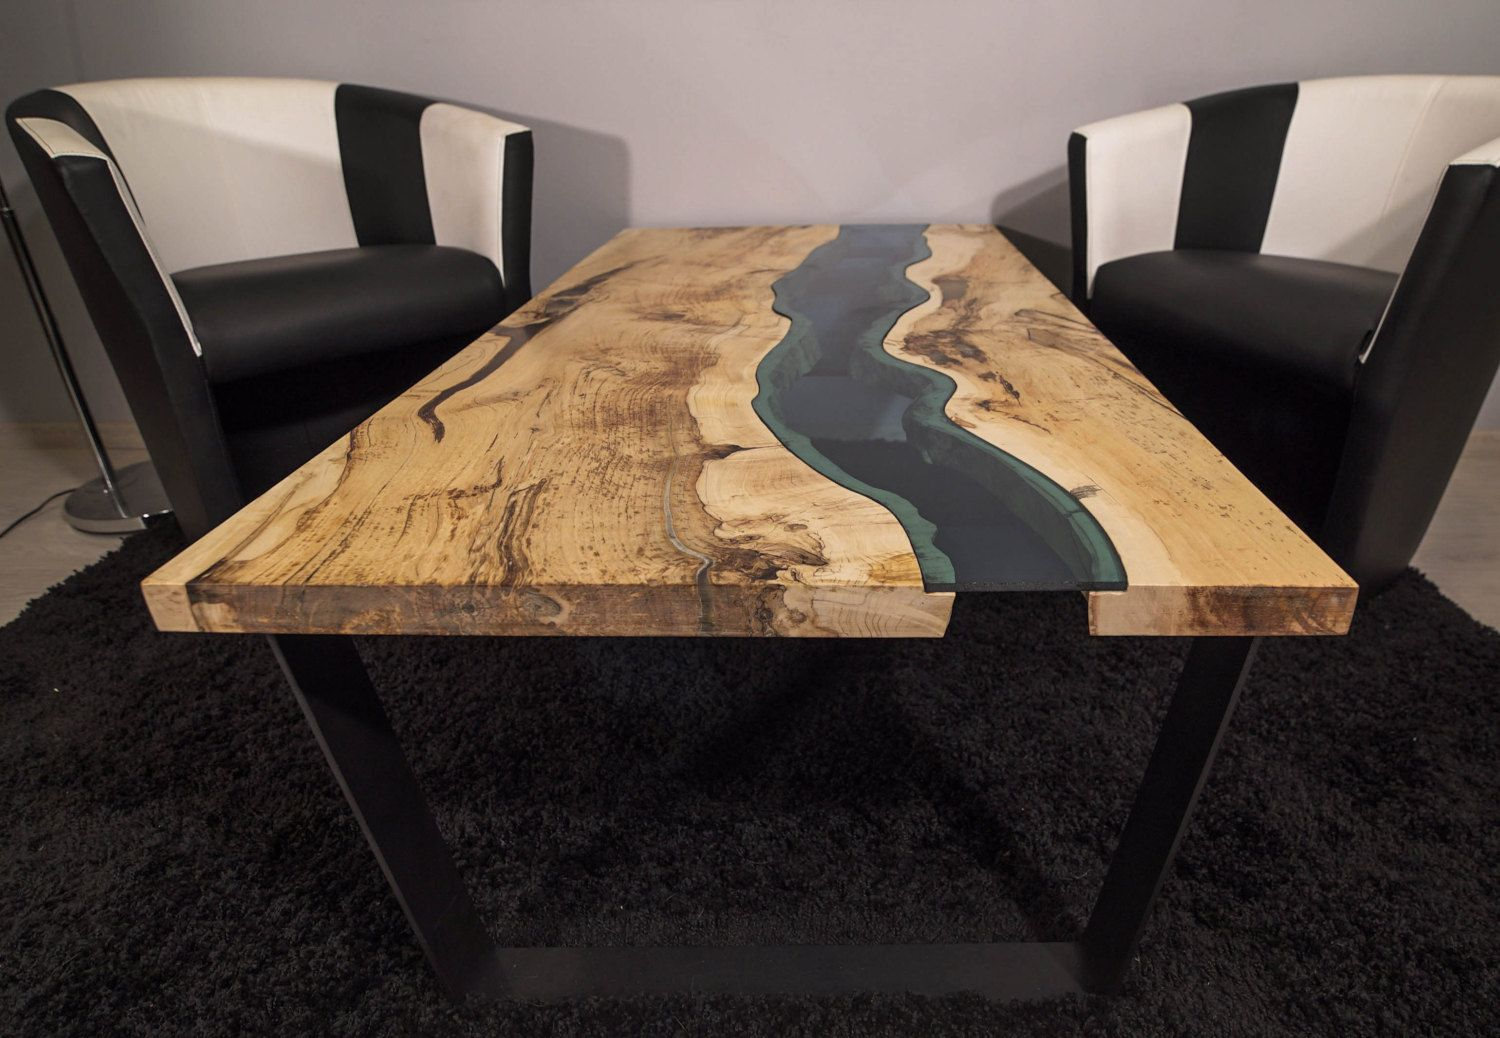 Harkavy furniture focuses on modern pieces made of wood and steel - Live Edge River Coffee Table Coffee Table Wood Timber River Table River Glow In The Dark